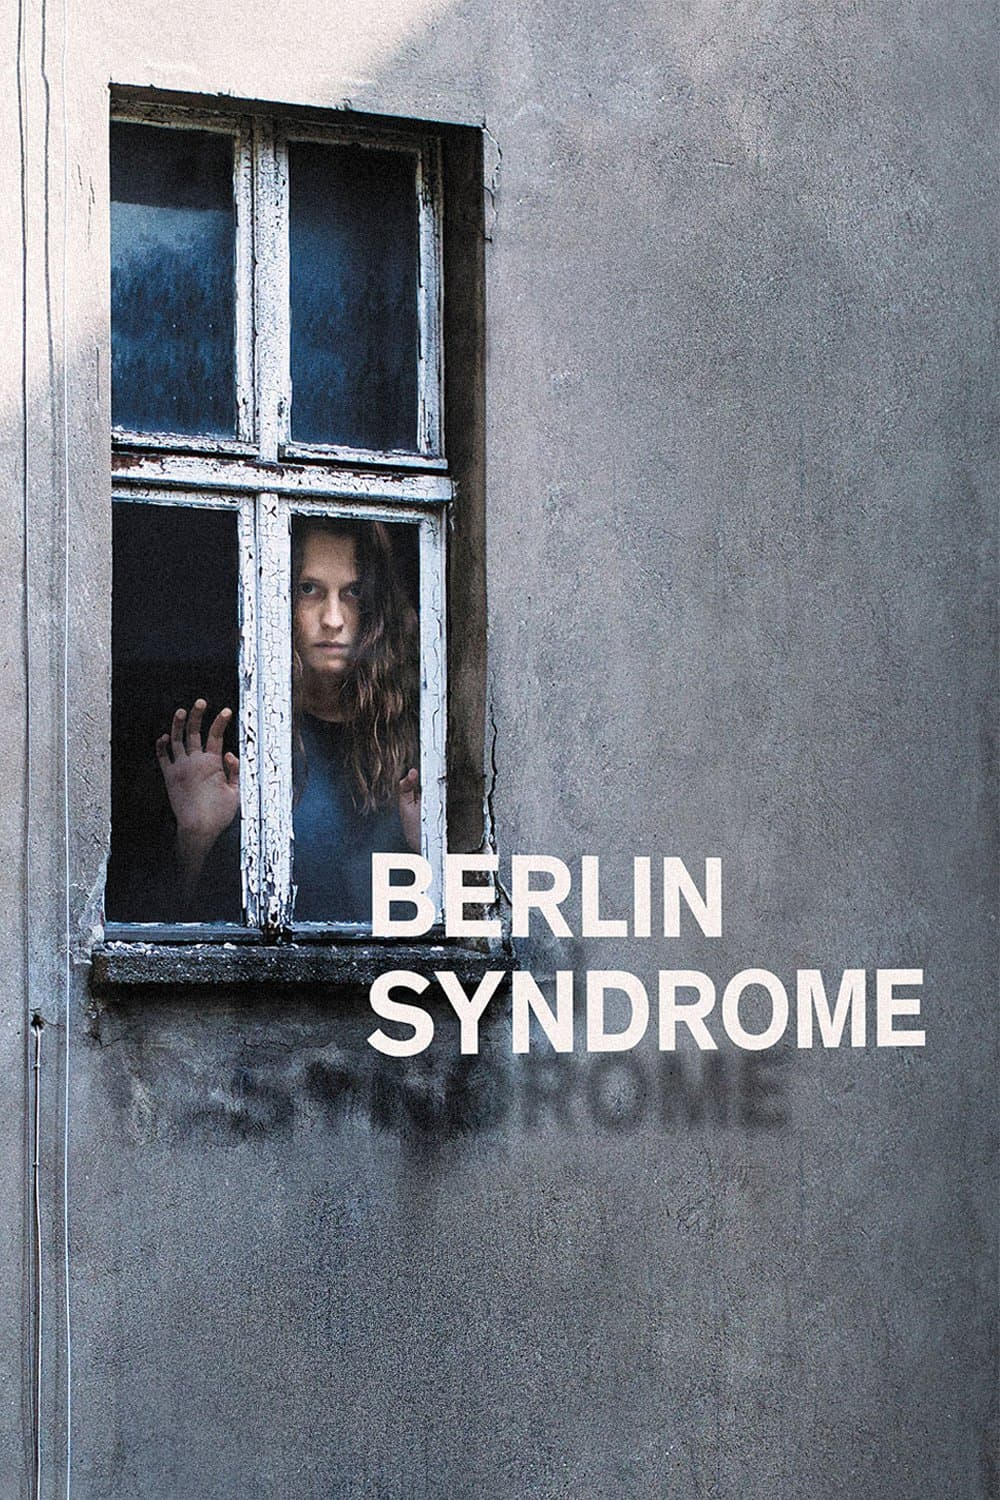 Berlin Syndrome, 2017